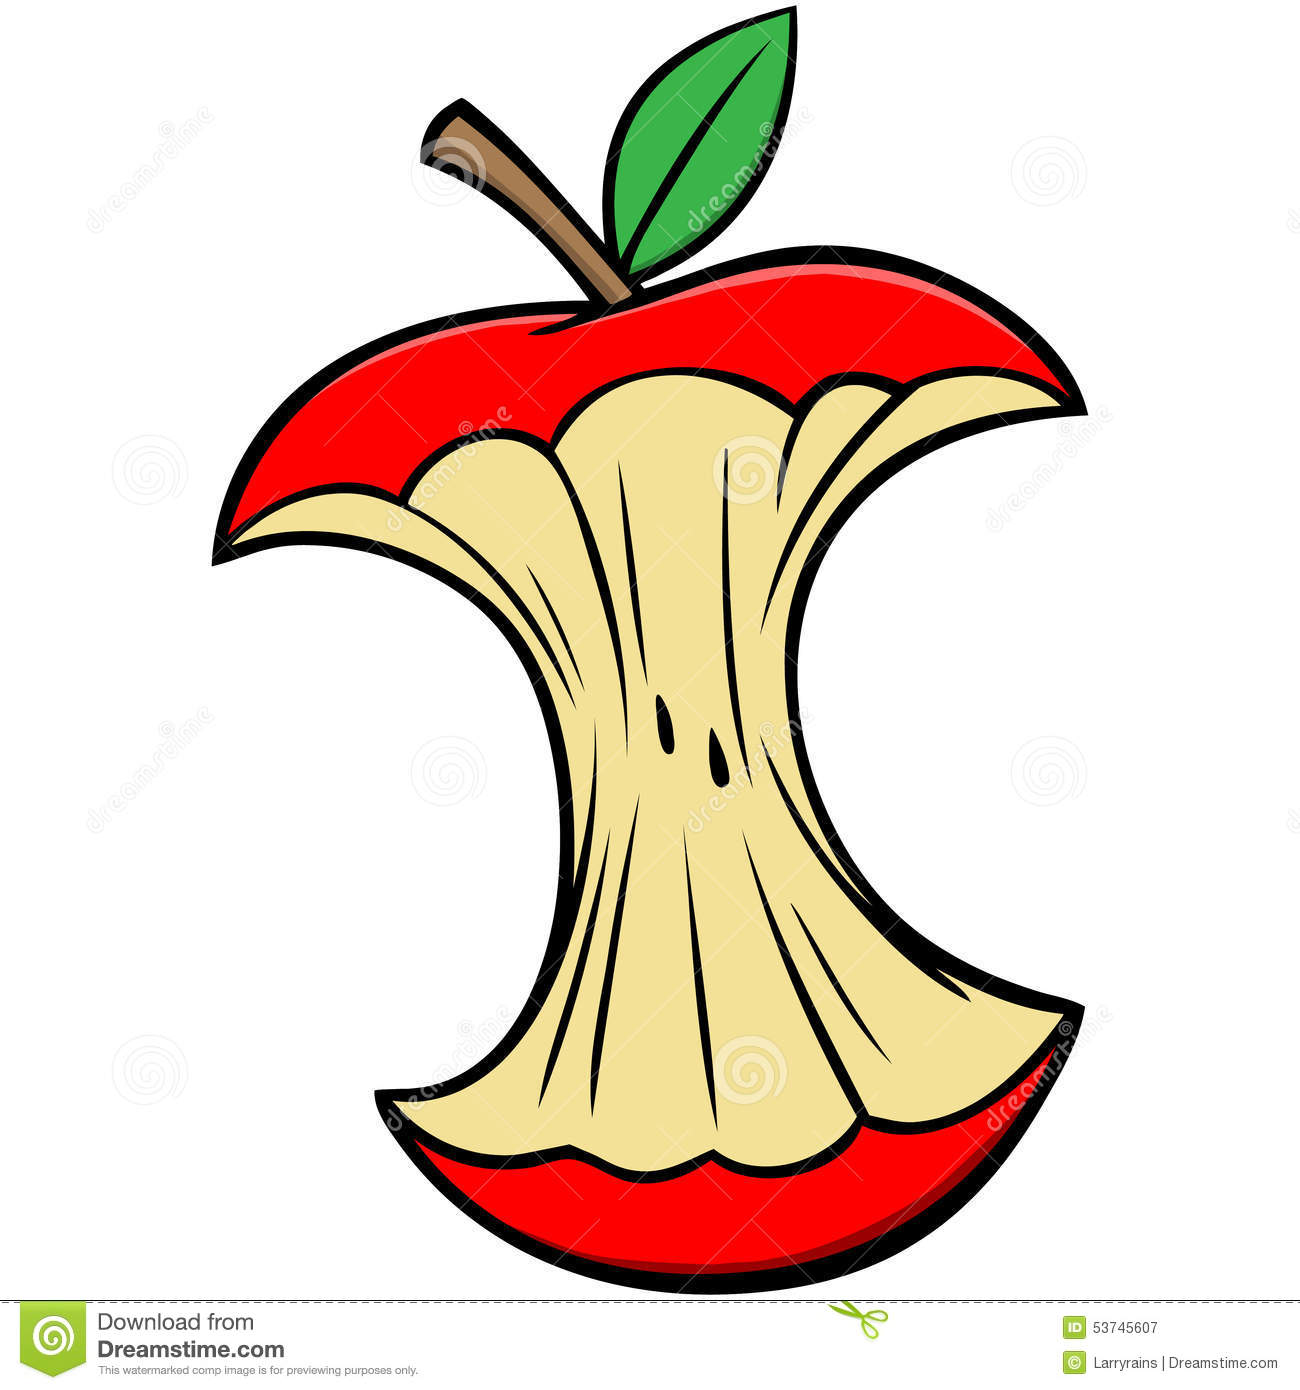 Cartoon Apple Core Stock Vector - Image: 53745607